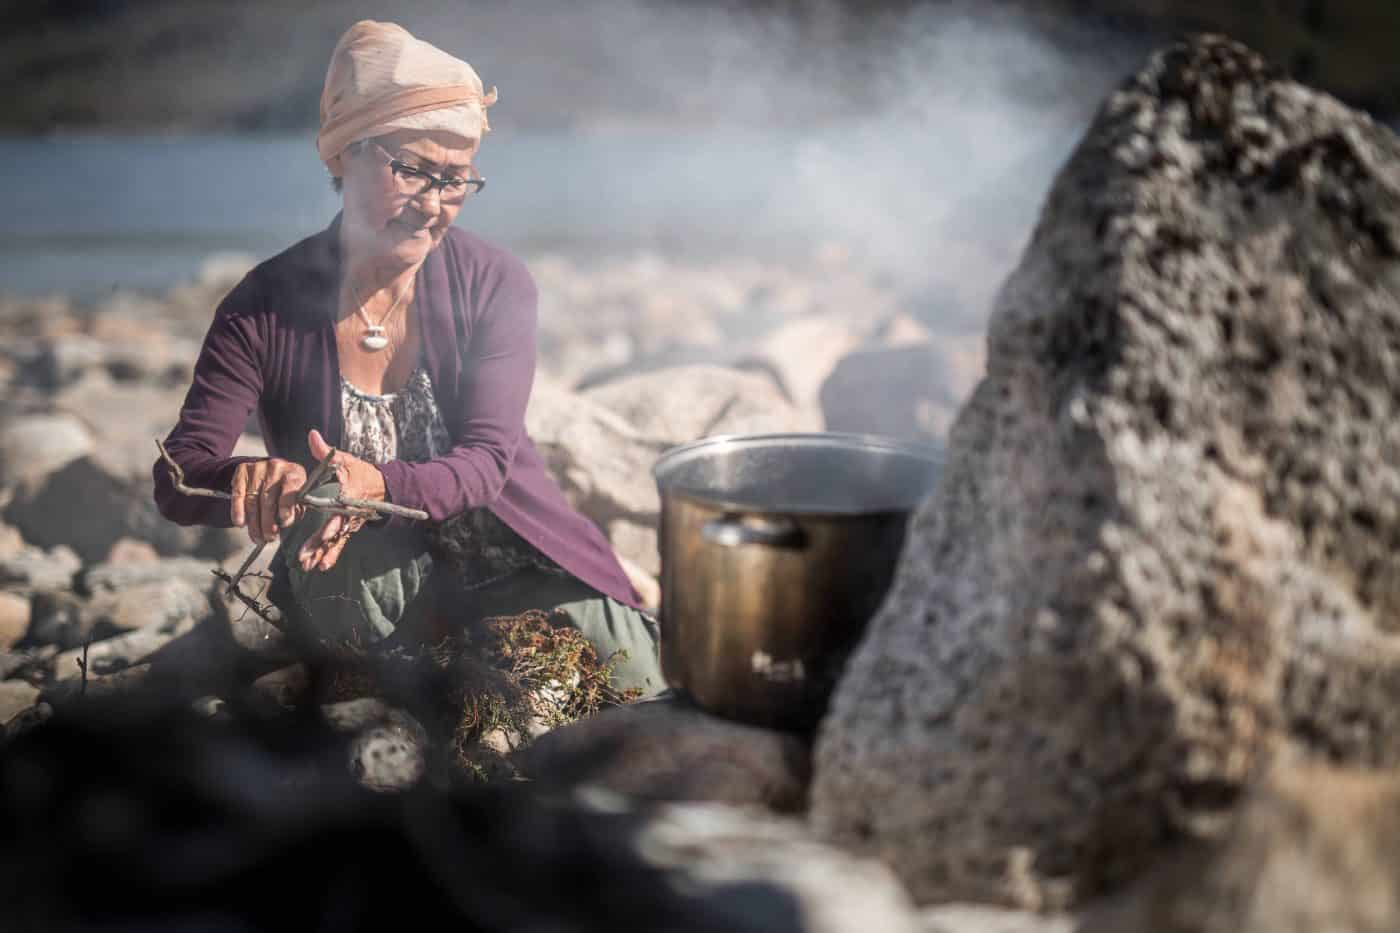 A woman preparing food over open fire in Narsaq in South Greenland. Photo by Mads Pihl.